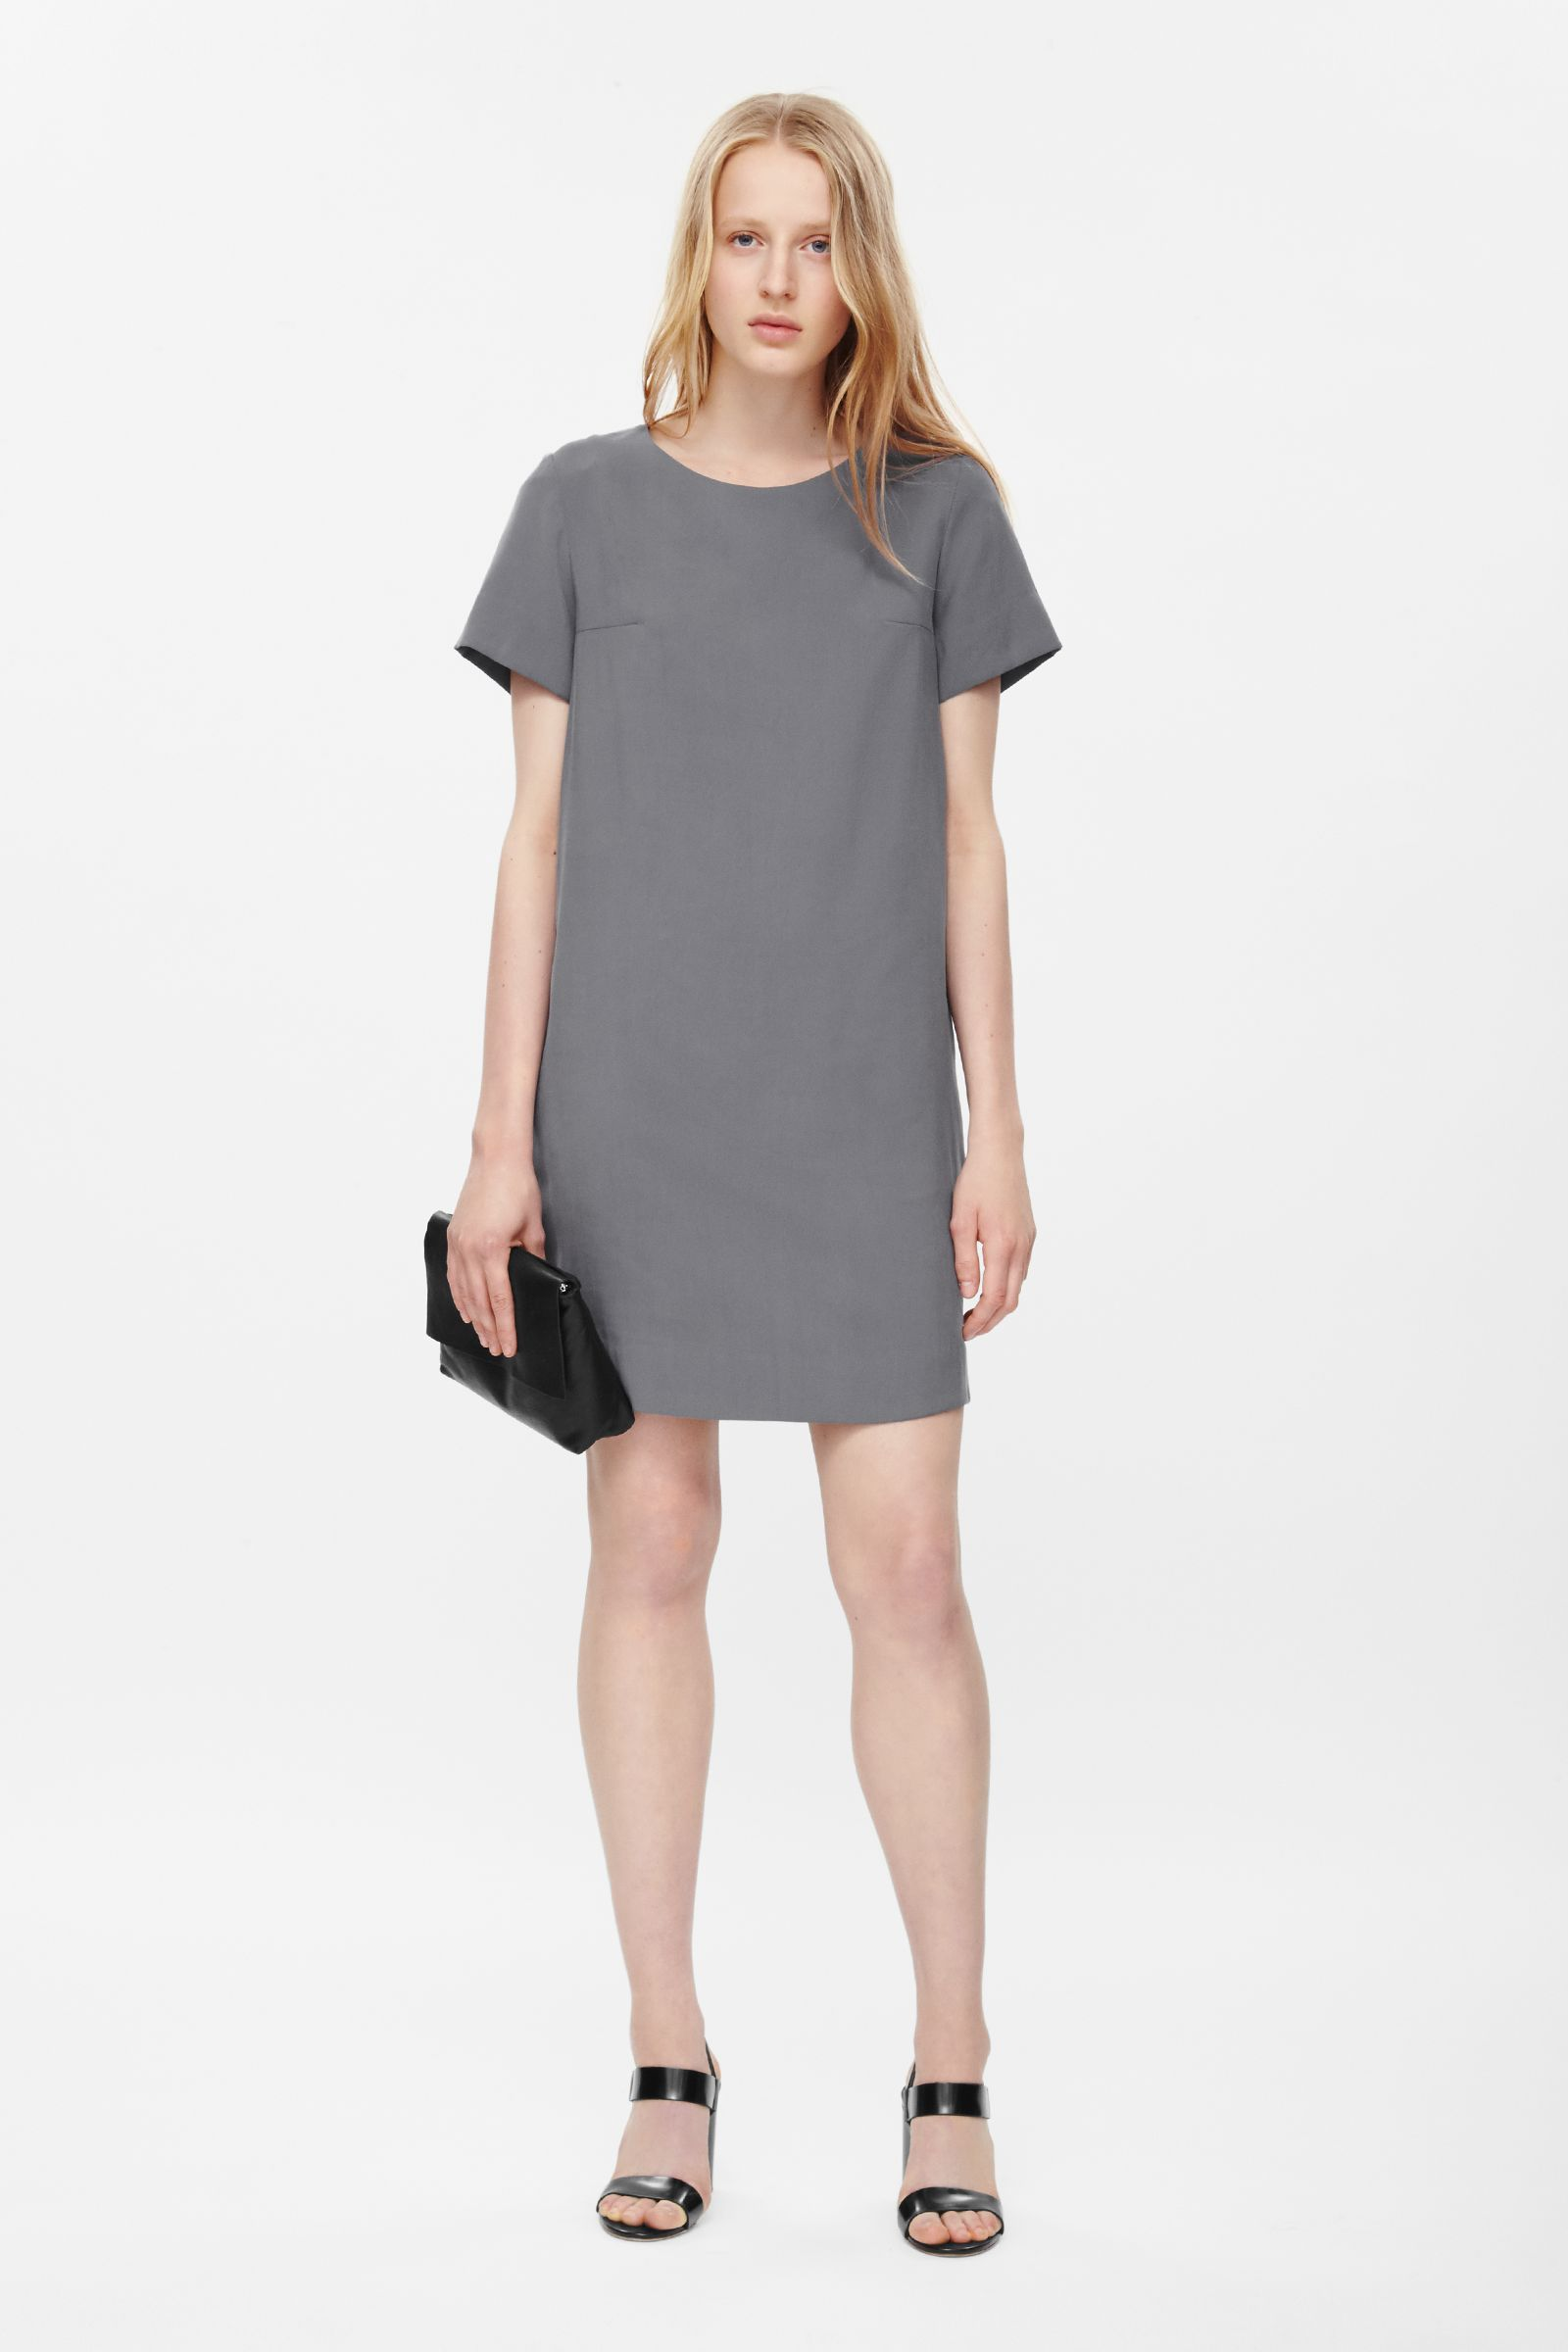 97708fadc30a A simple straight-cut shape, this dress has a clean round neckline and neat  short sleeves. Made from a lightweight fabric with a soft matte finish, ...